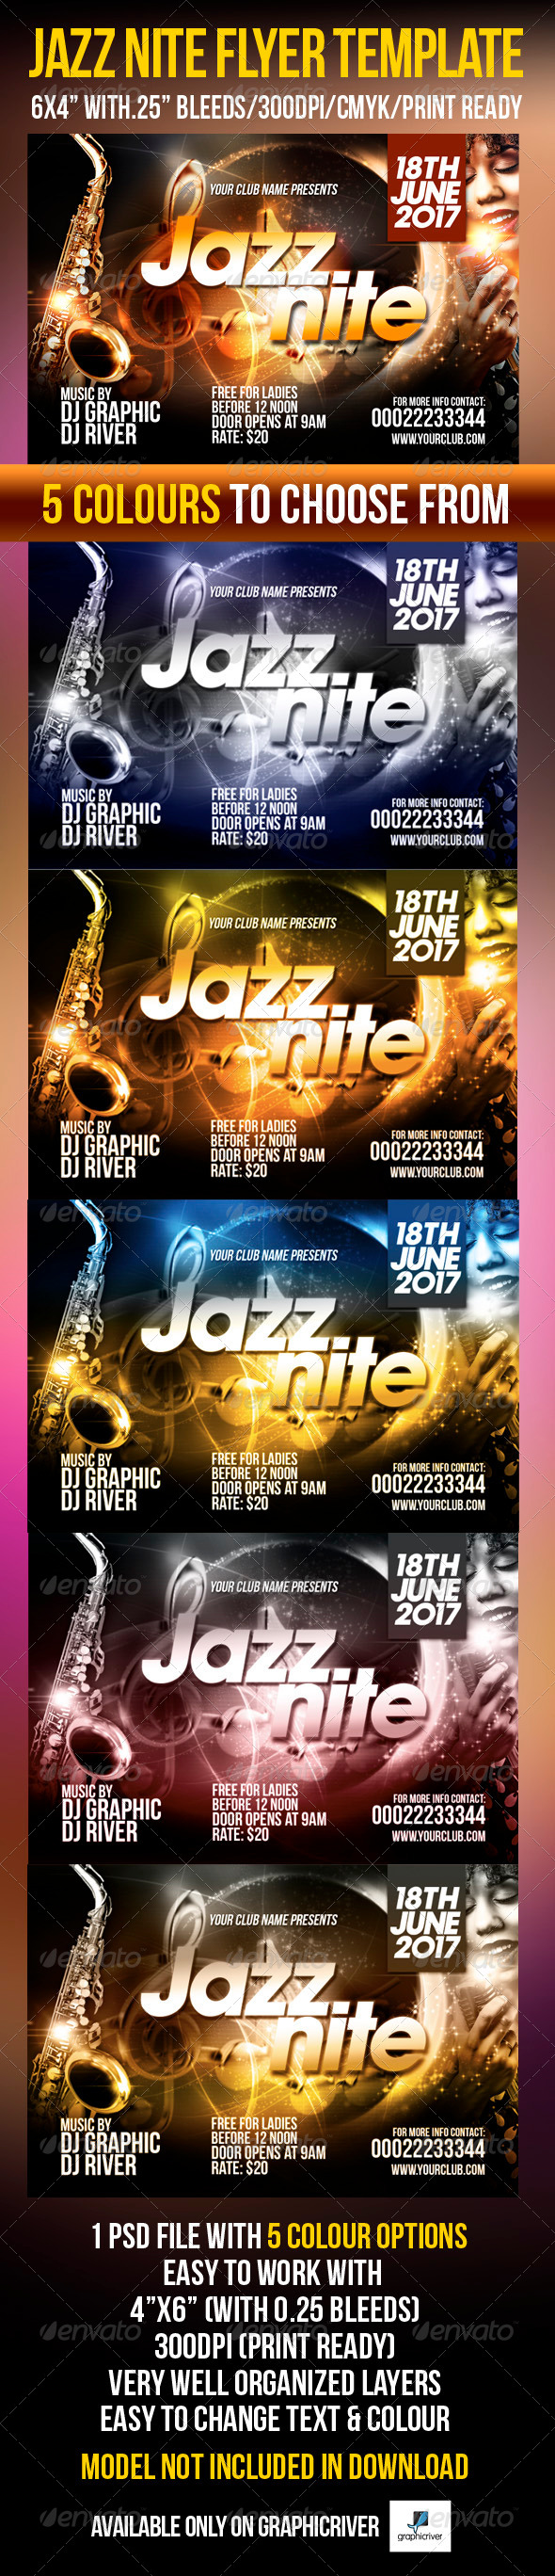 GraphicRiver Jazz Nite Flyer Template 4074033